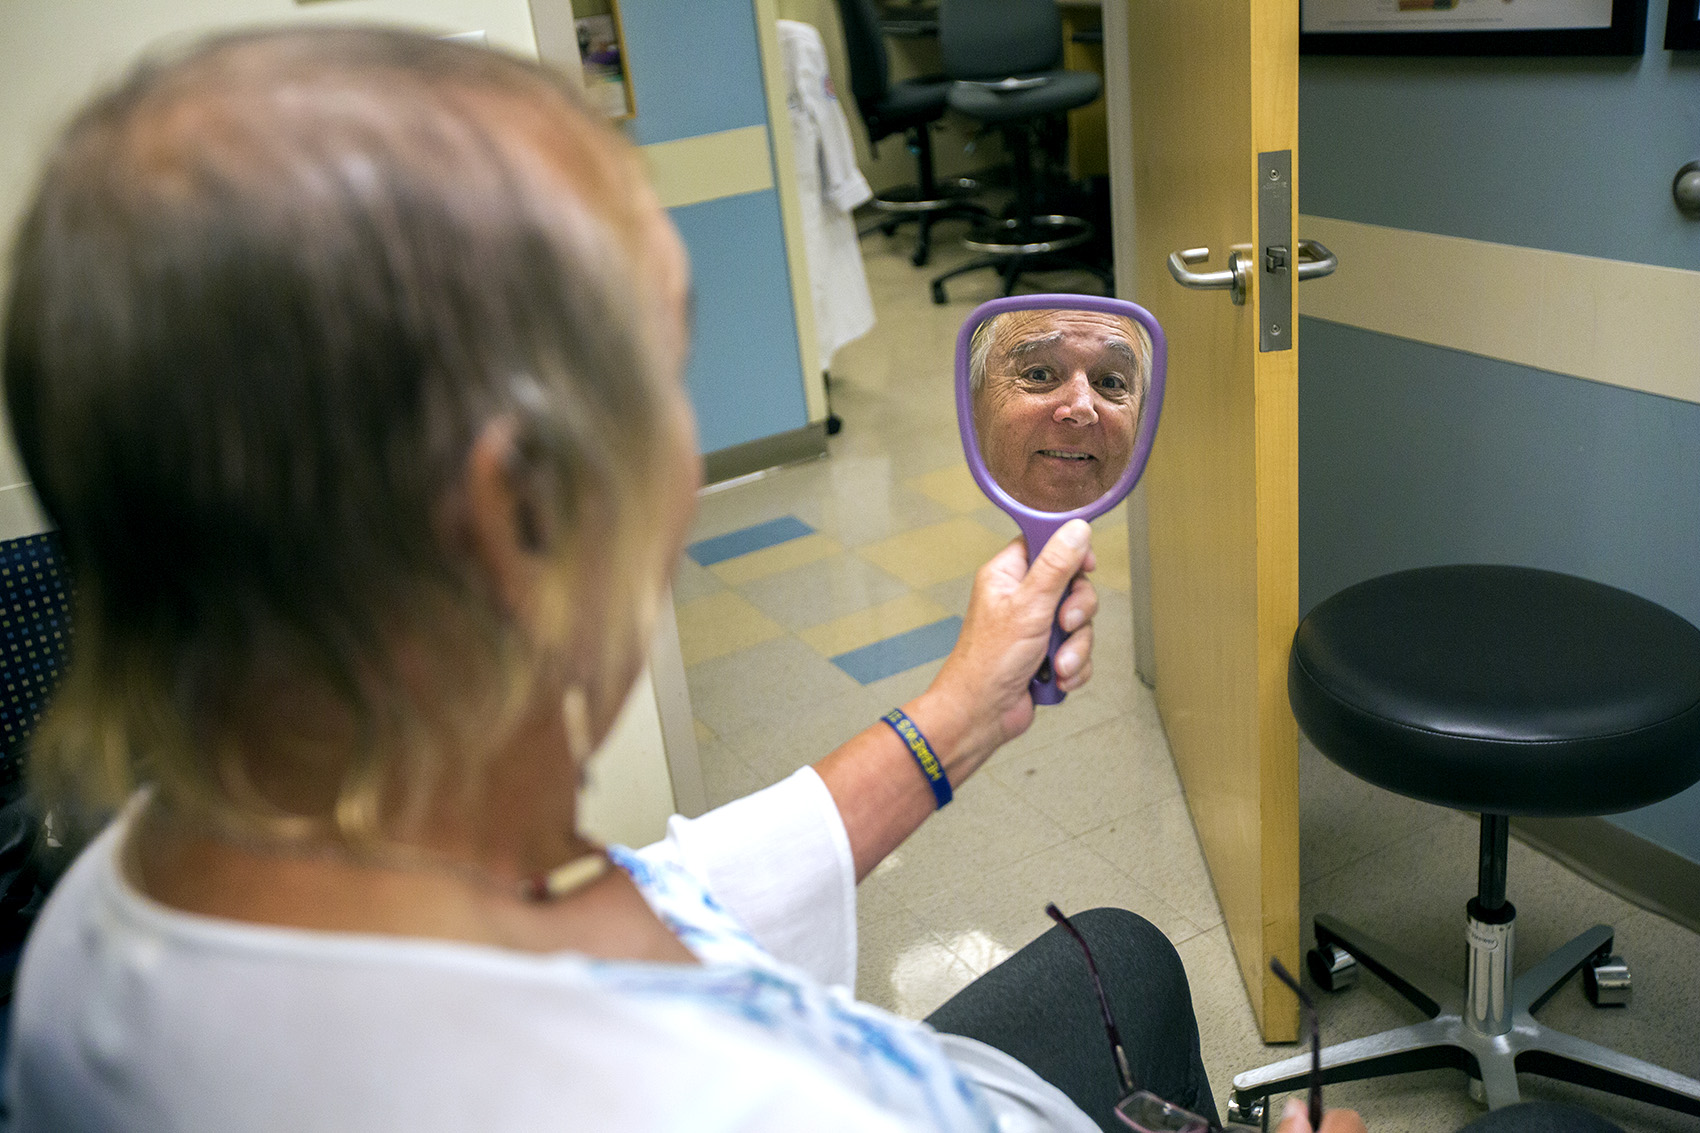 Tami Goodhue looks in a mirror during her appointment to review information about the facial feminization surgery she wishes to have done at Boston Medical Center. (Jesse Costa/WBUR)